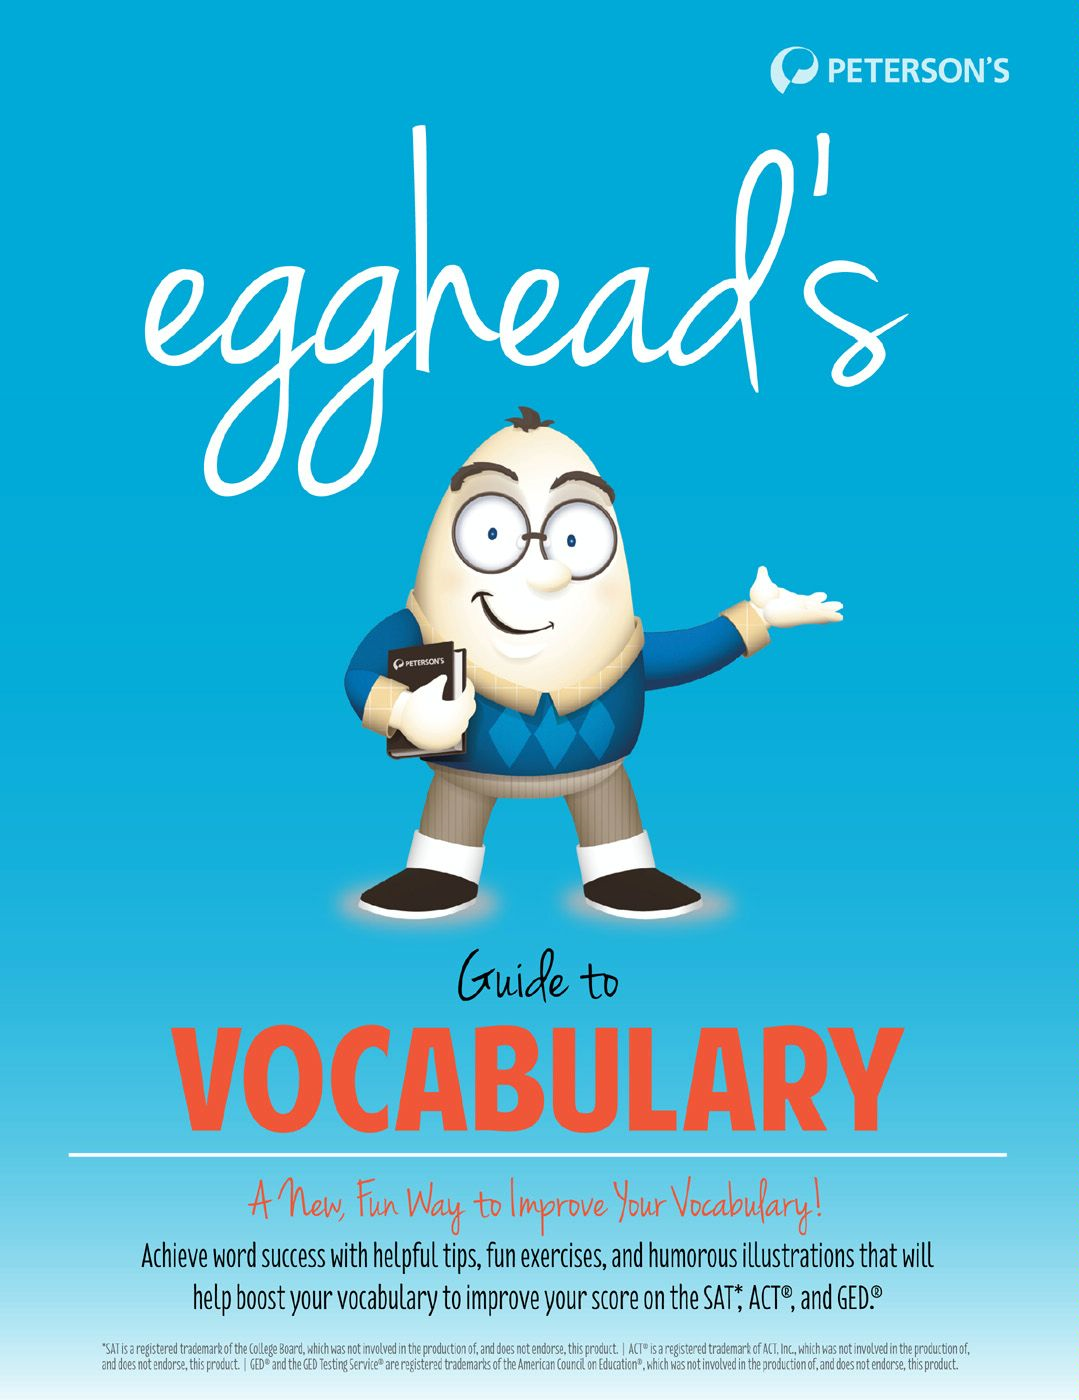 Egghead's Guide to Vocabulary